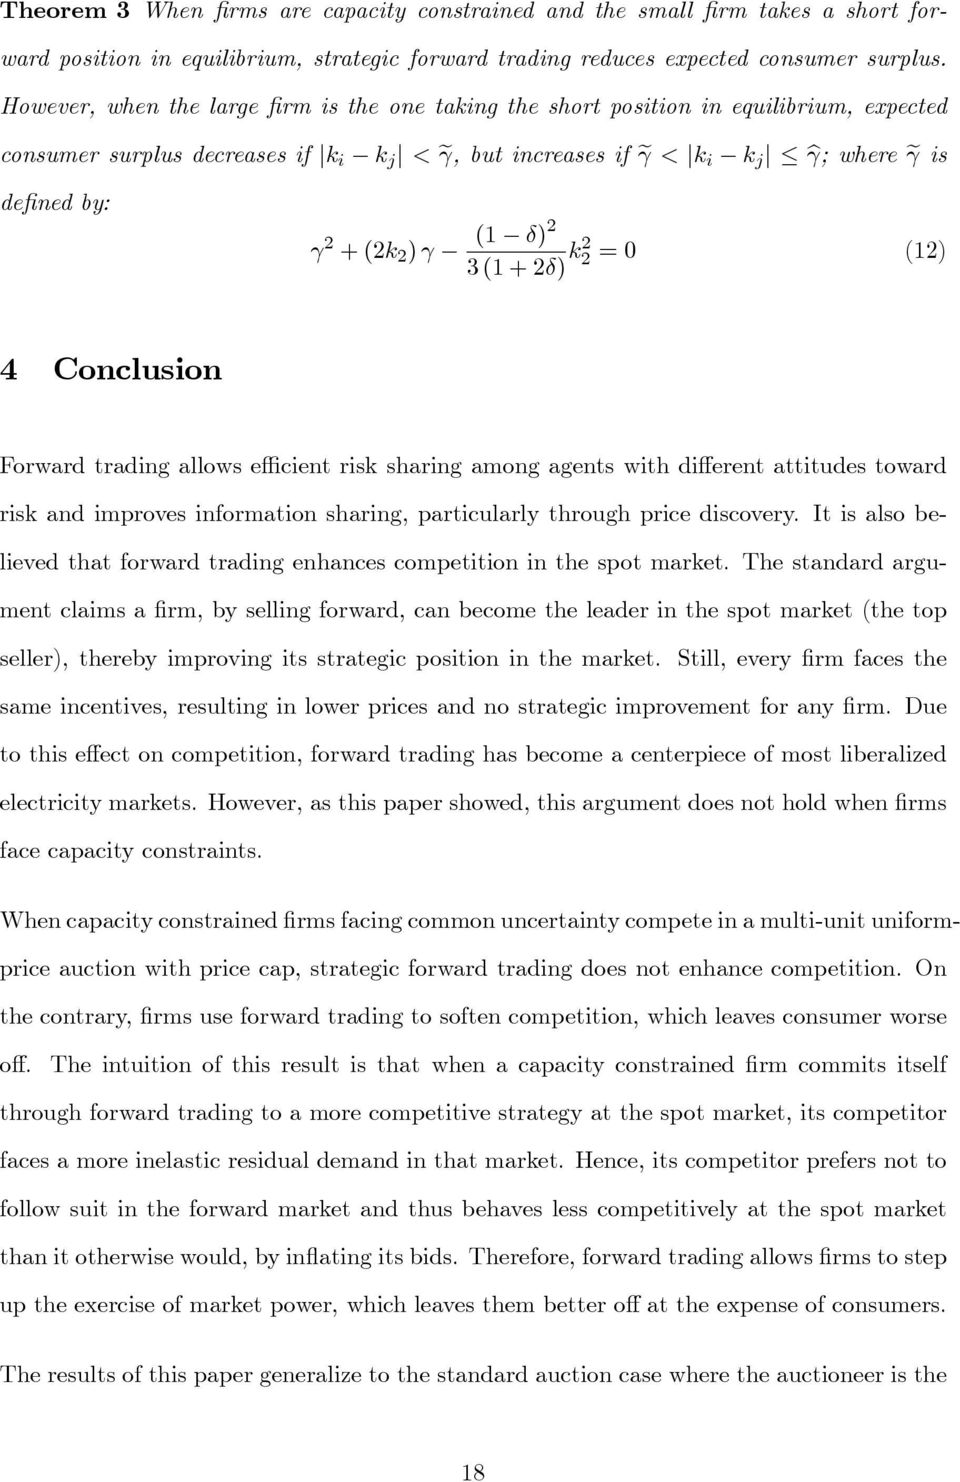 2 ) (1 ) 2 3 (1 + 2) k2 2 = 0 (12) 4 Conclusion Forward trading allows e cient risk sharing among agents with di erent attitudes toward risk and improves information sharing, particularly through